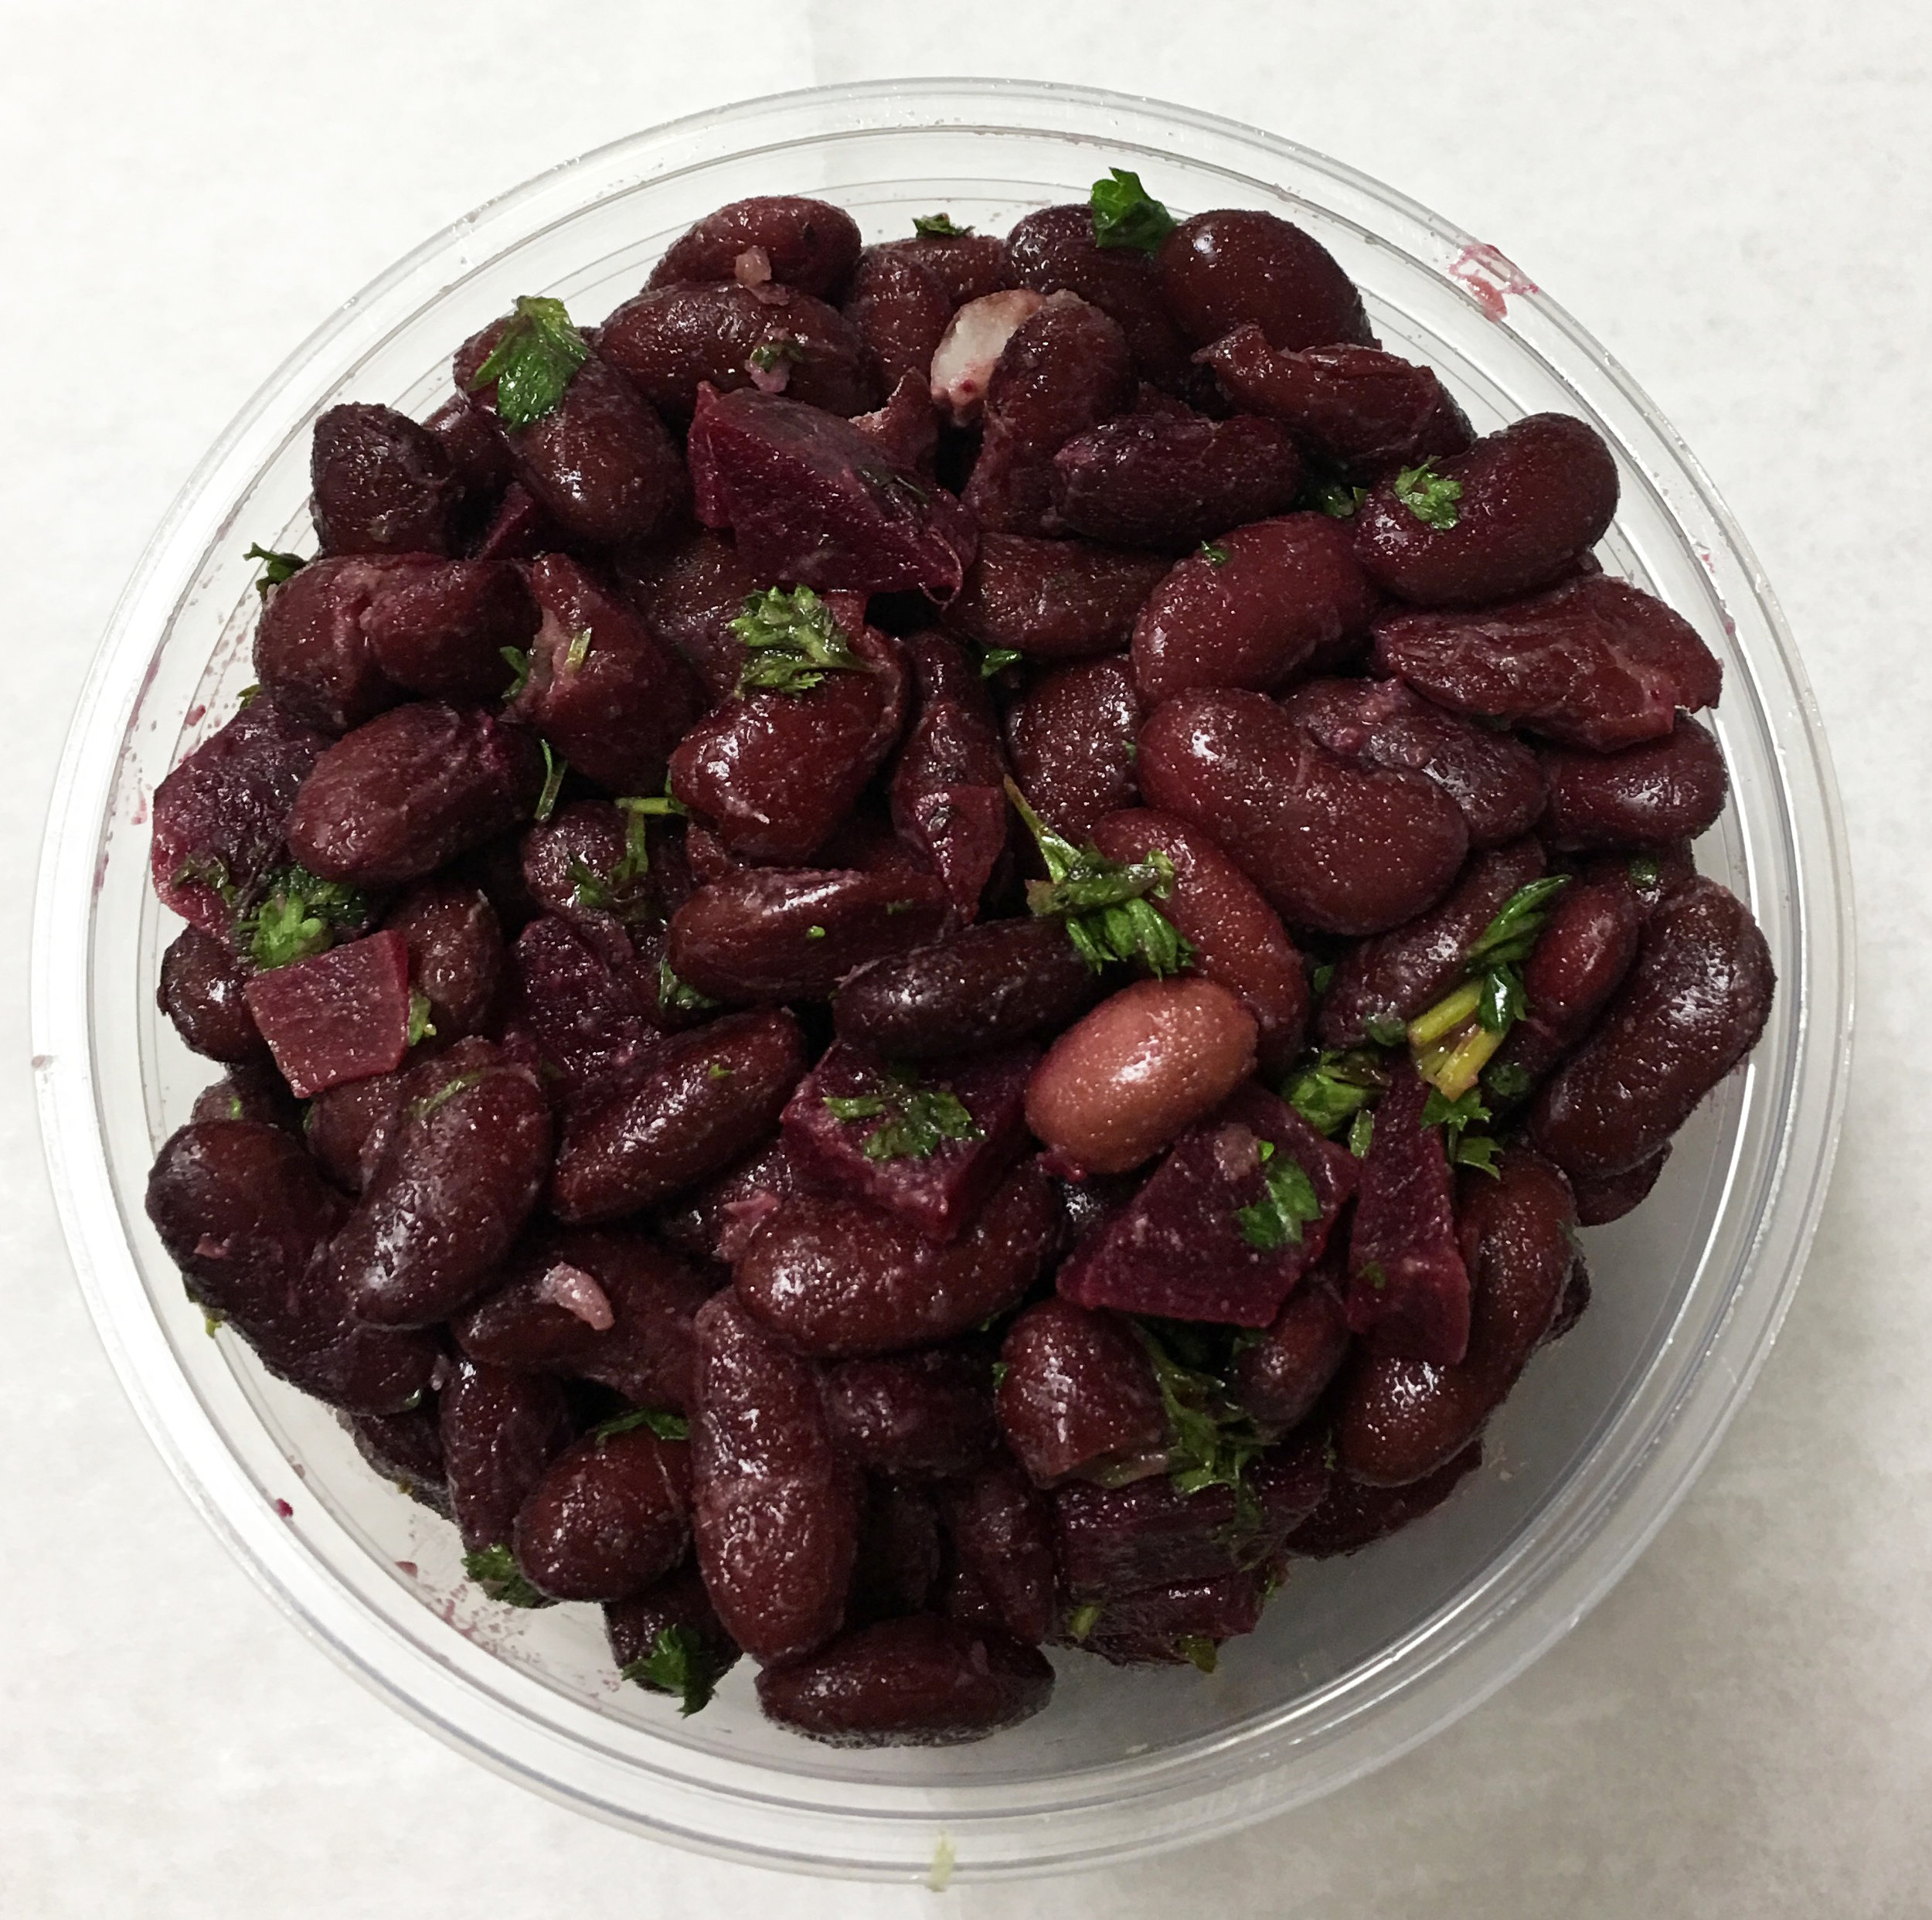 Kidney beans with red beets and parsley.